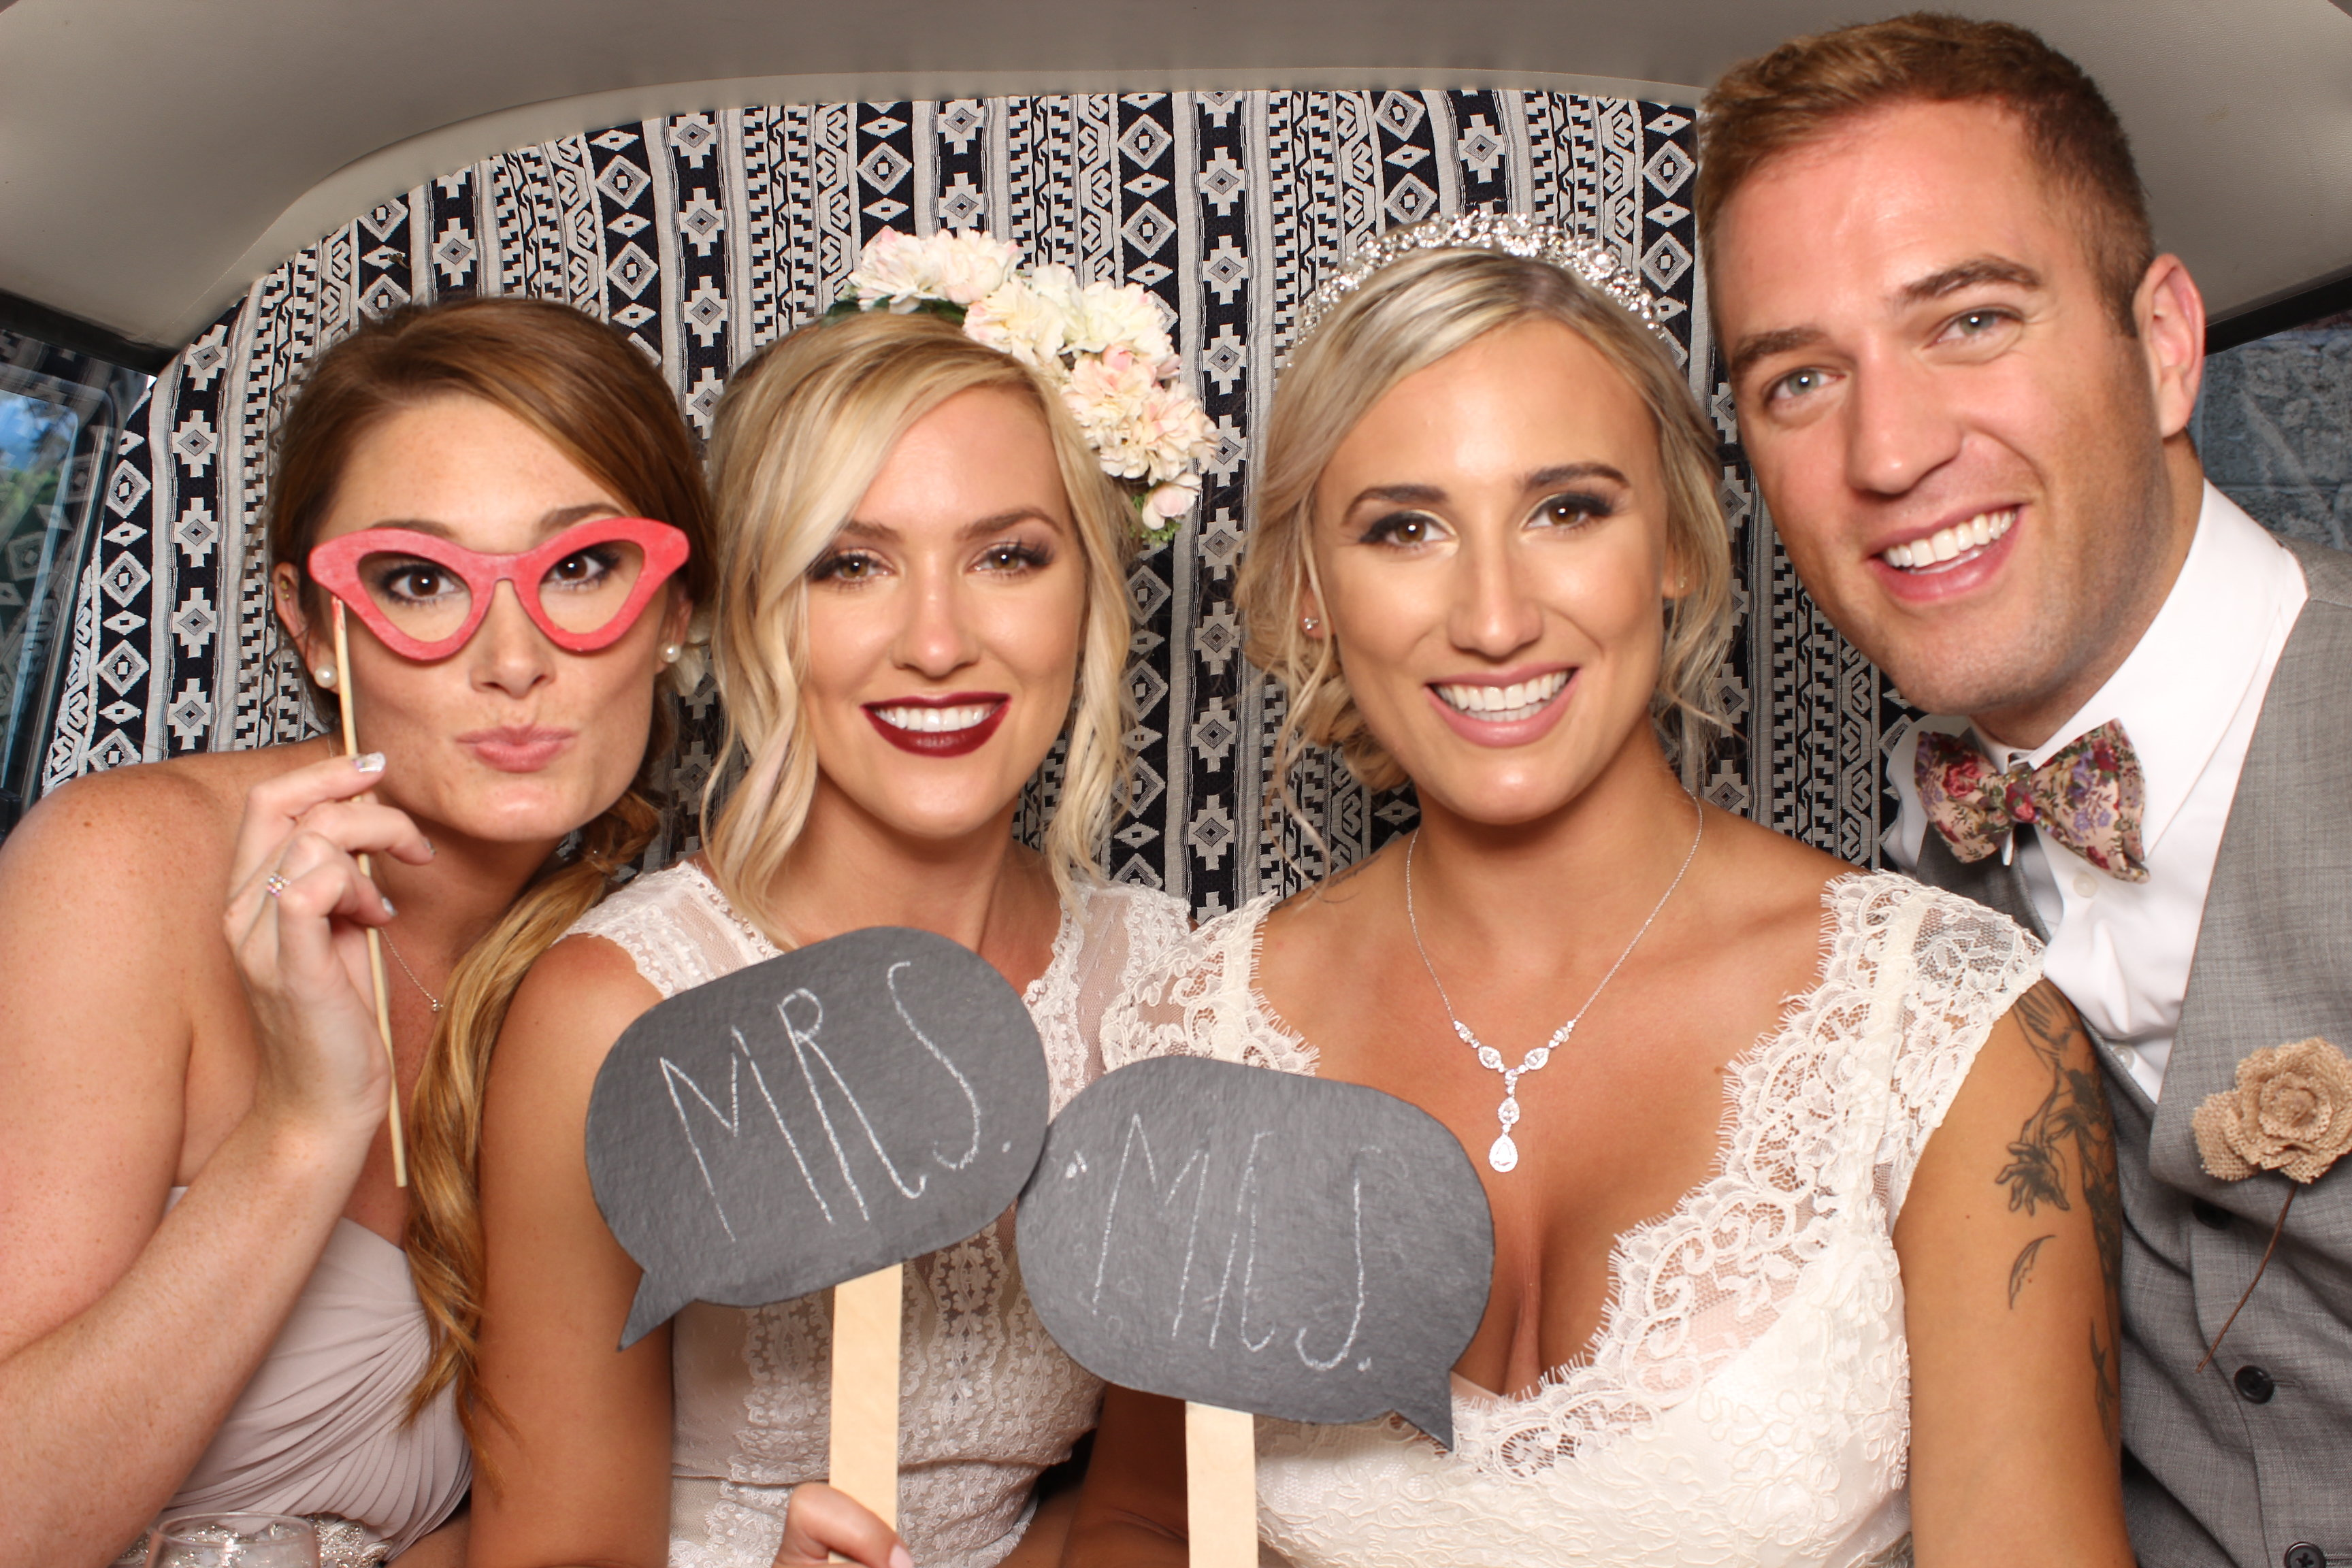 Seattle's Top Wedding Vendors | Wedding party in photo booth | Shutter Bus Co. | Seattle's Best New Wedding Vendor | Shutter Bus Co. Photography